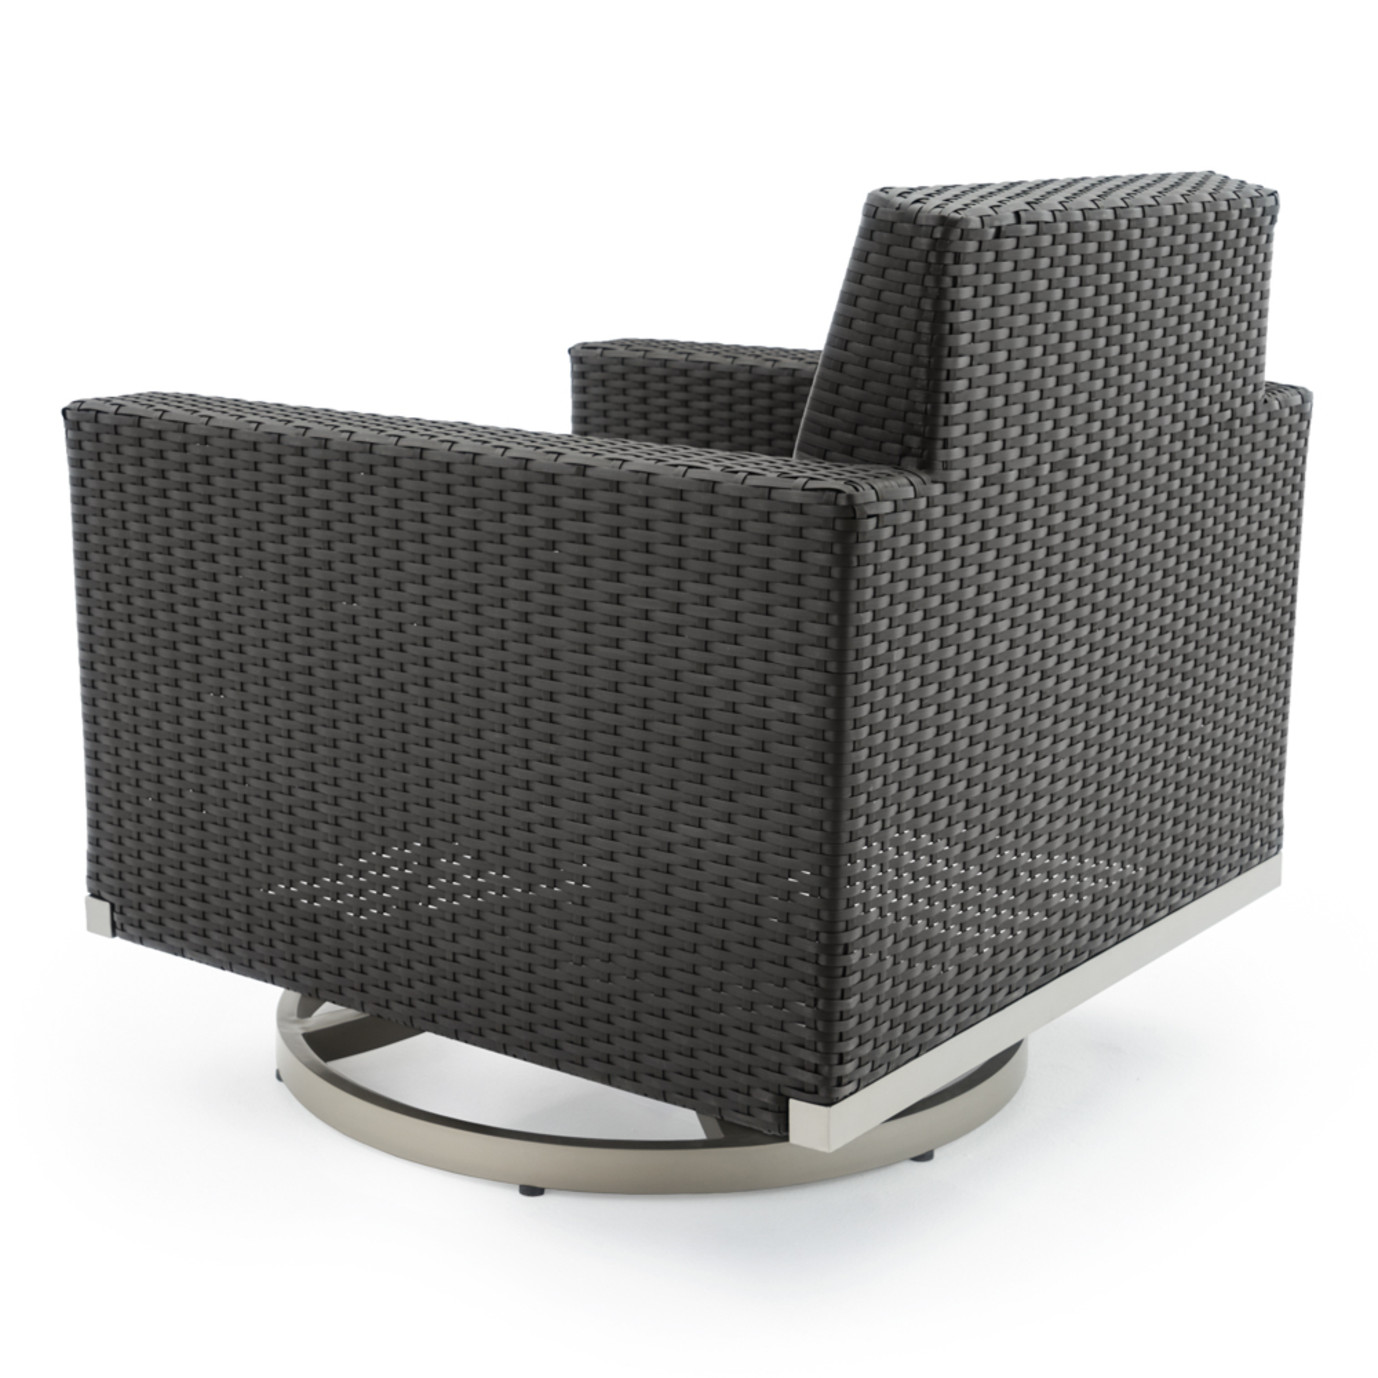 Milo™ Espresso 7pc Motion Deep Seating Set - Charcoal Gray